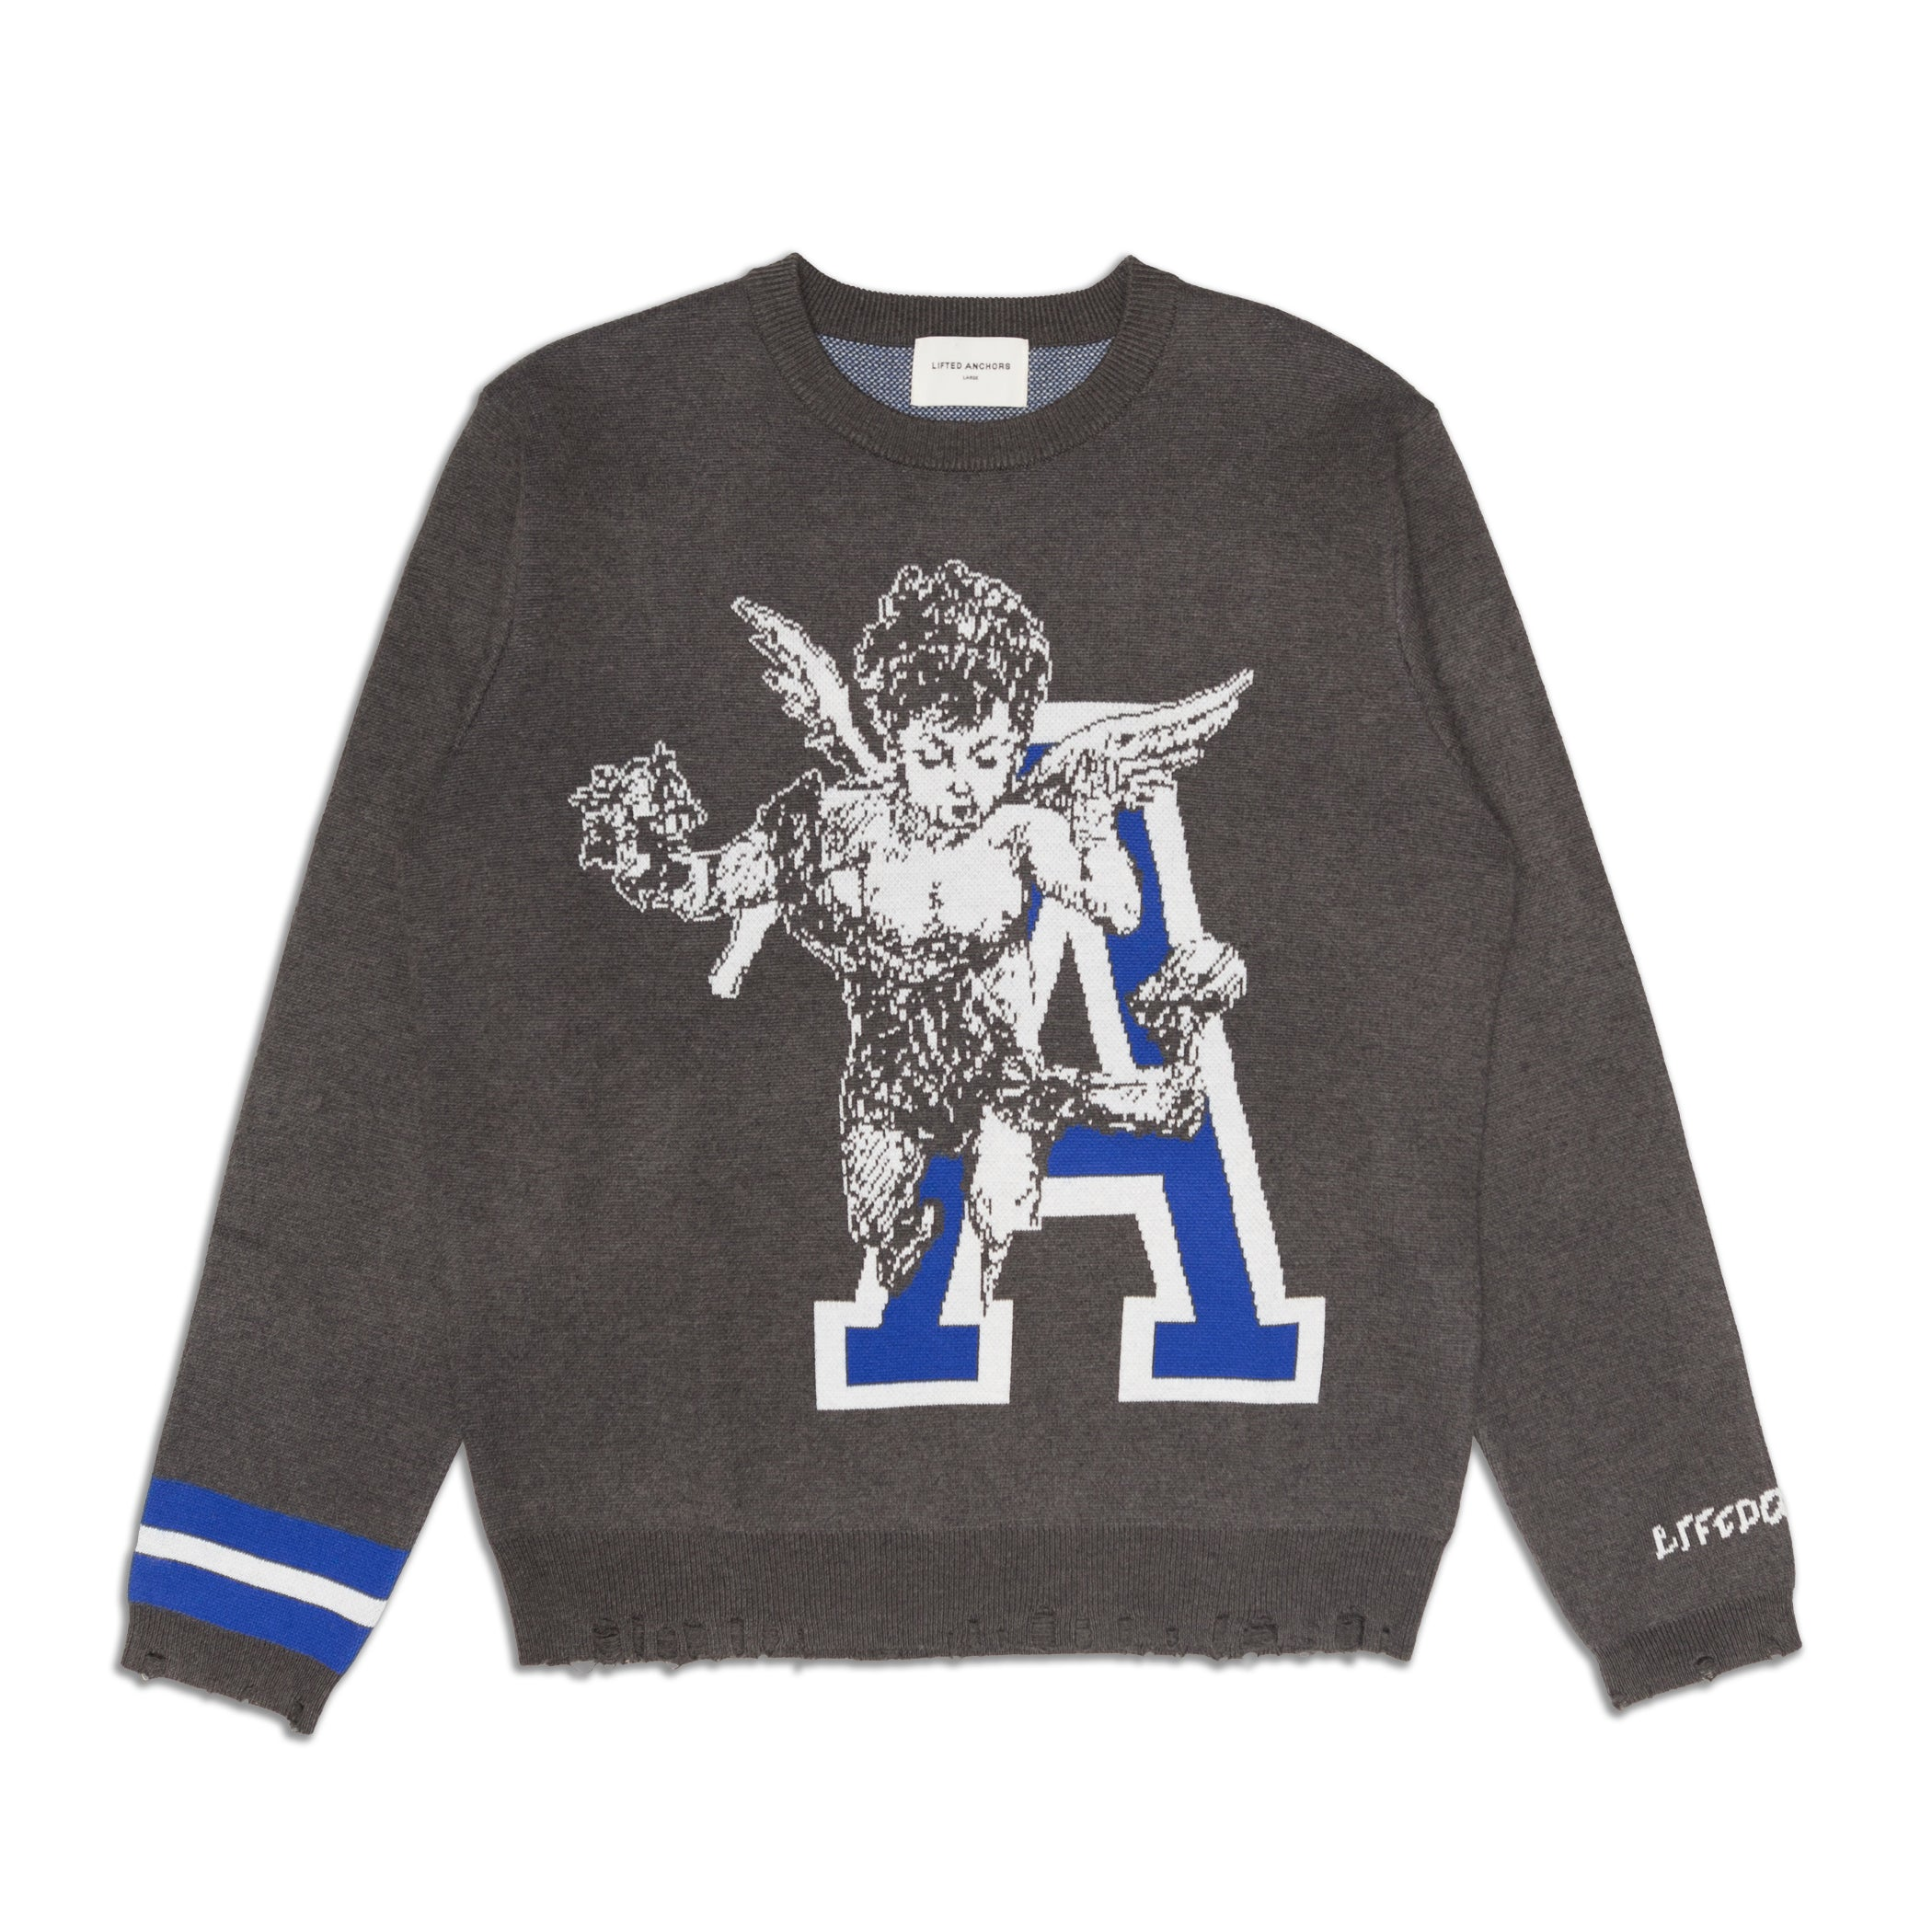 Lifted Anchors - Cornell Sweater